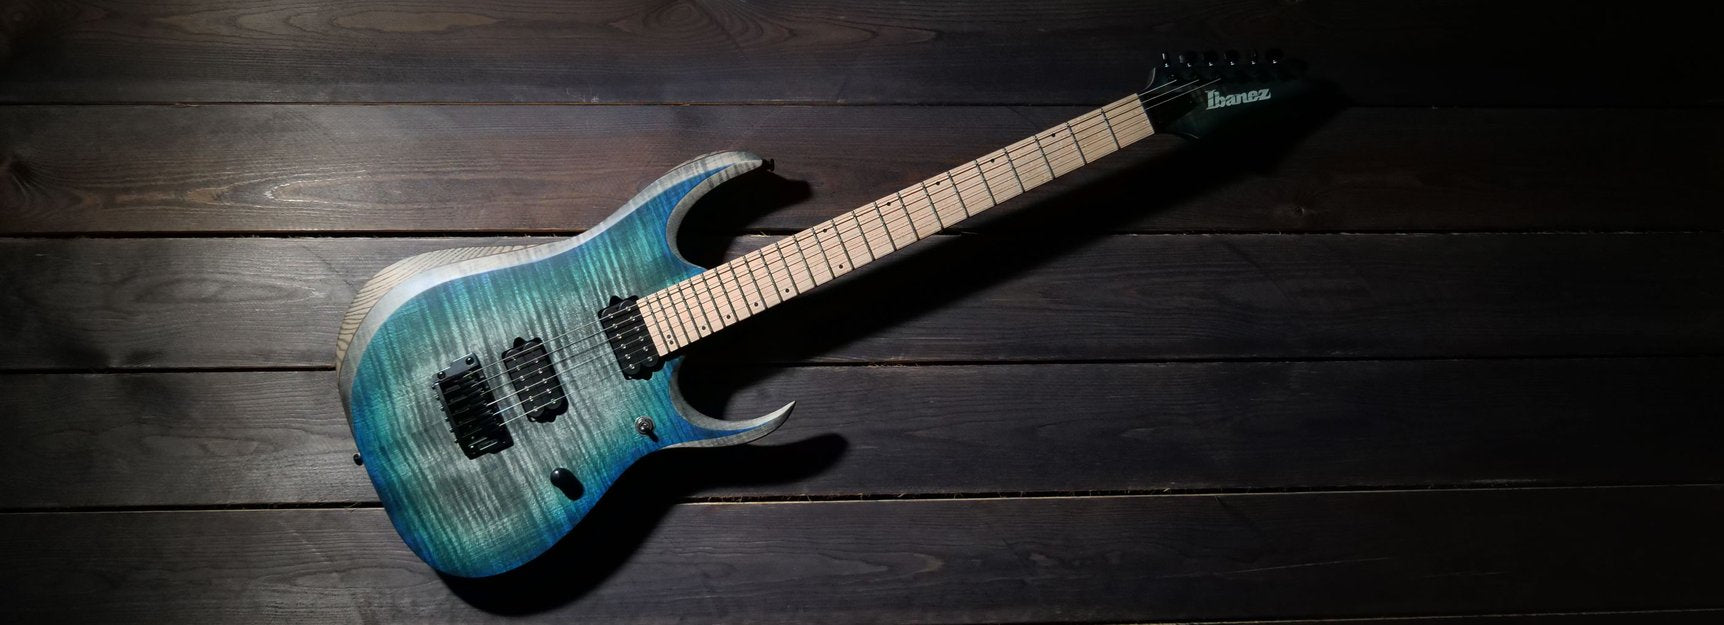 2018 Ibanez Guitars